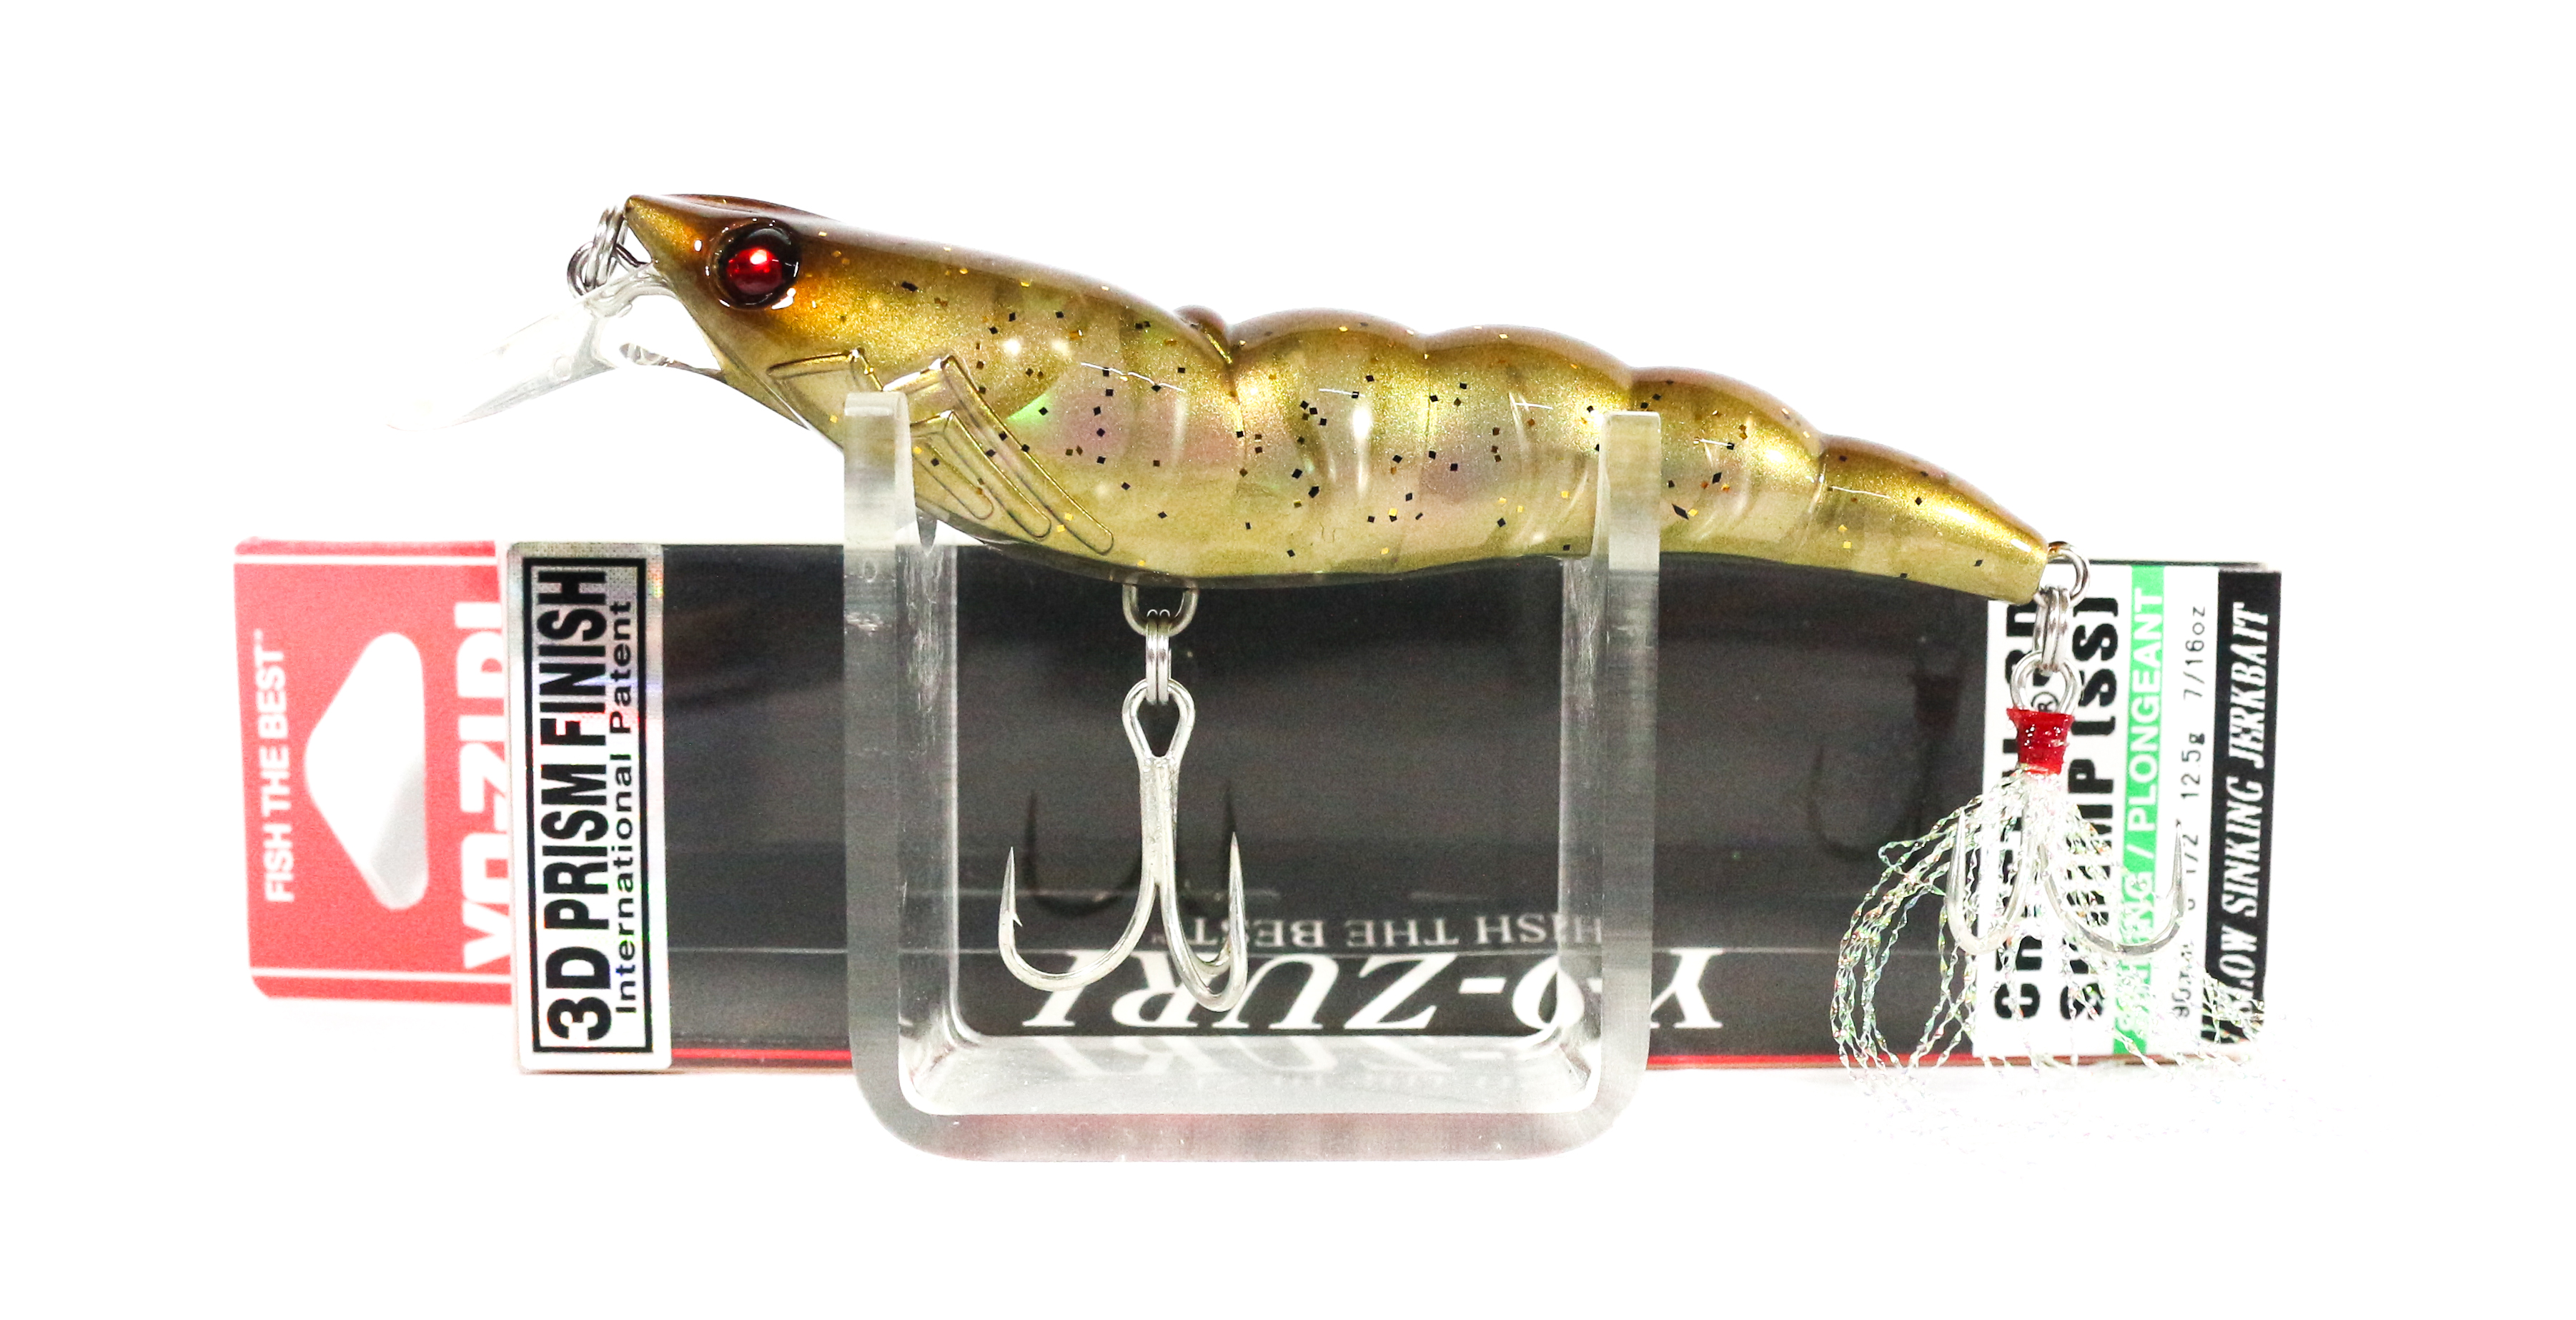 Yo Zuri 3D Crystal Shrimp 90 mm Sinking Lure R1162-NPGF (2639)